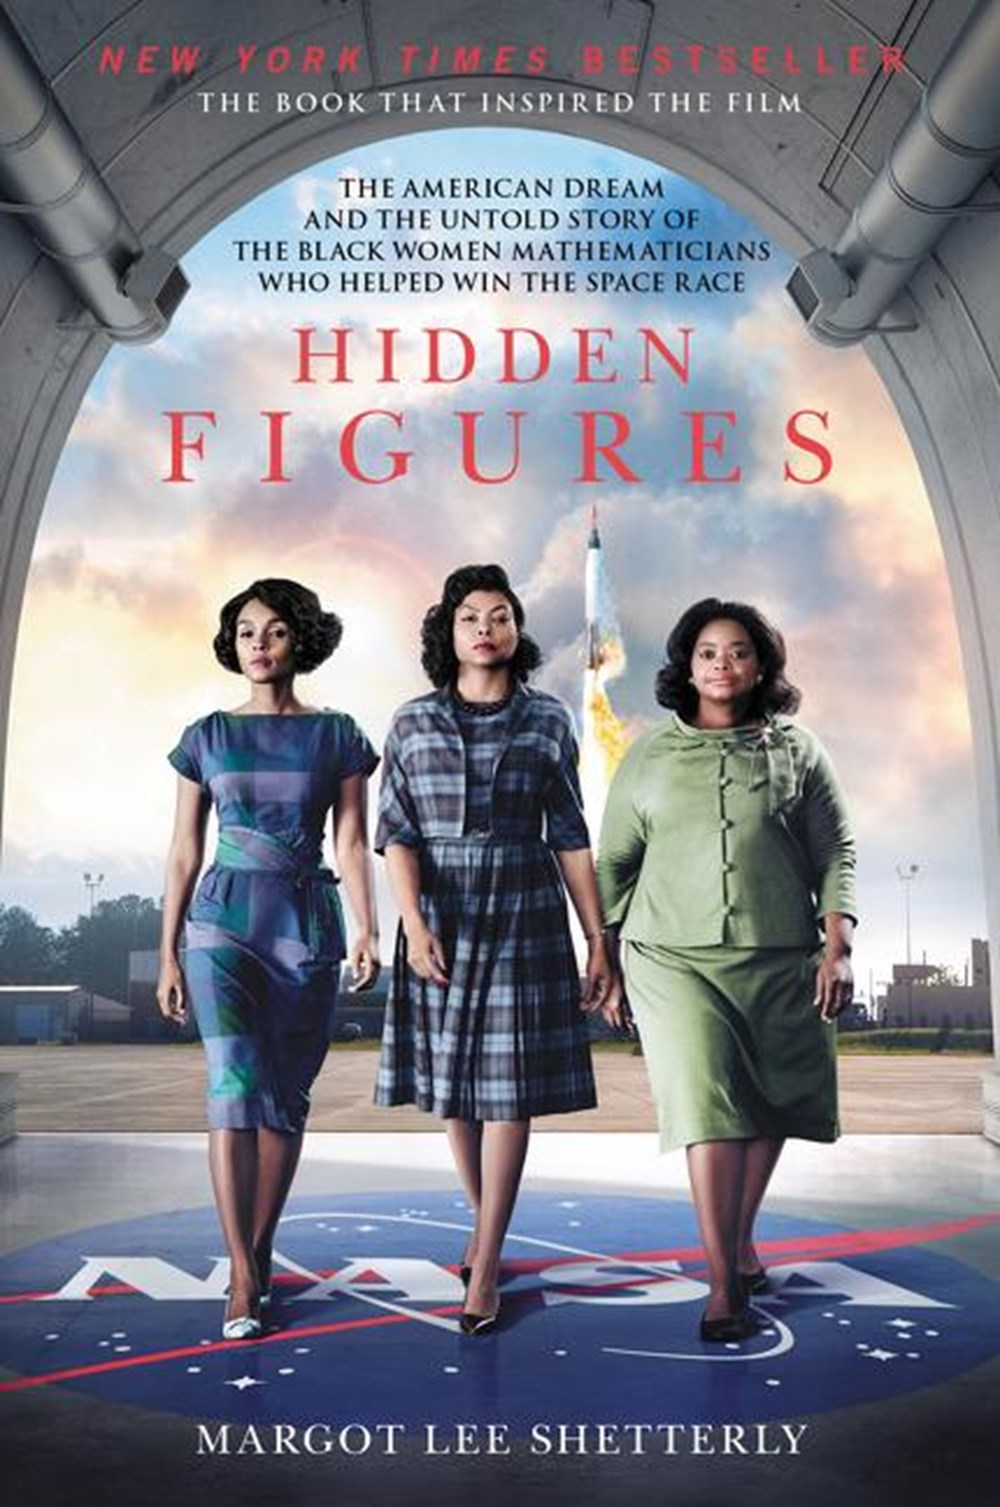 Hidden Figures The American Dream and the Untold Story of the Black Women Mathematicians Who Helped